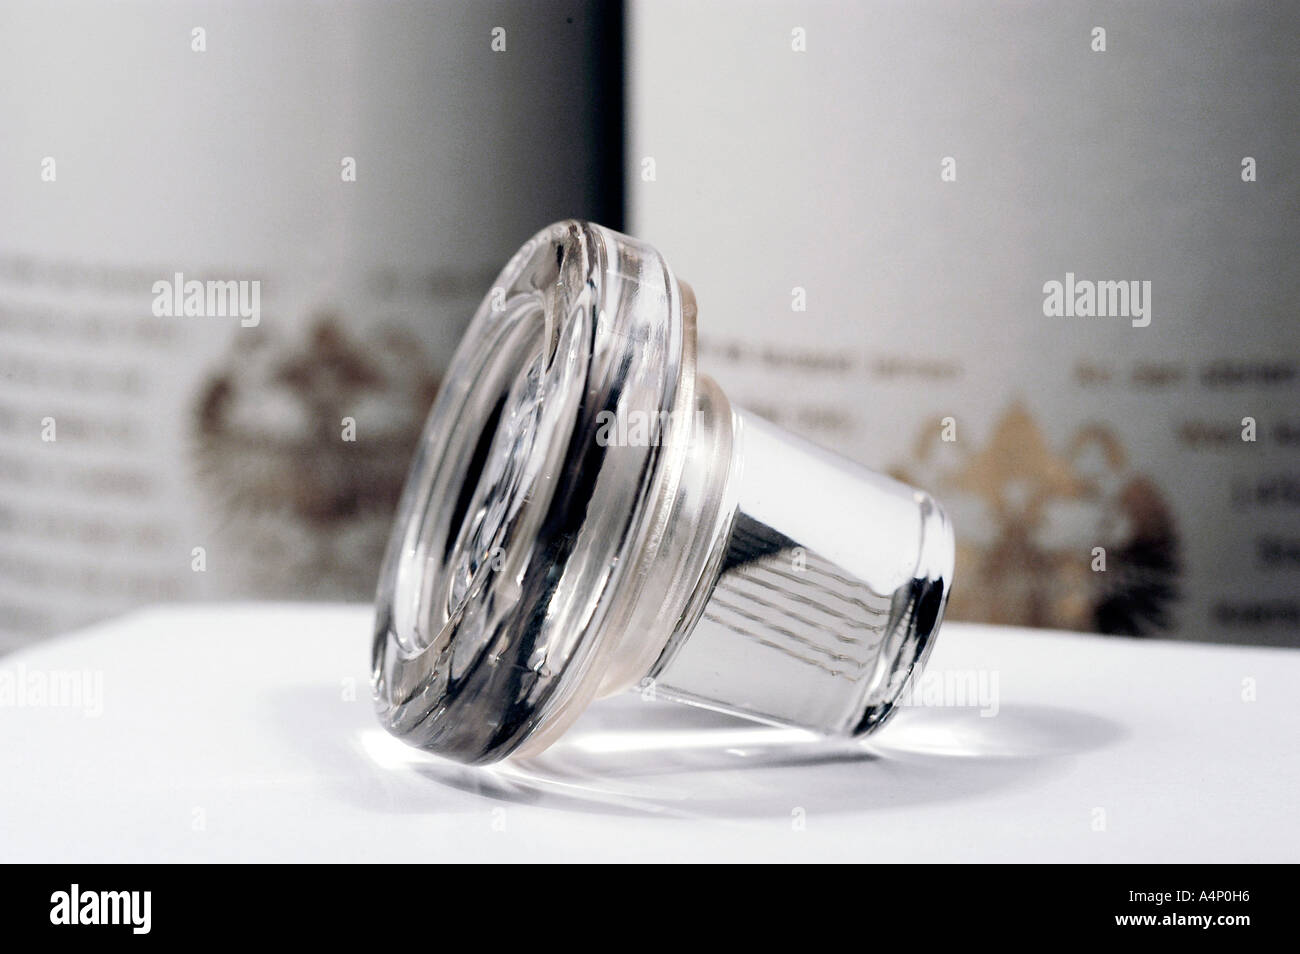 stopper made of glass - Stock Image